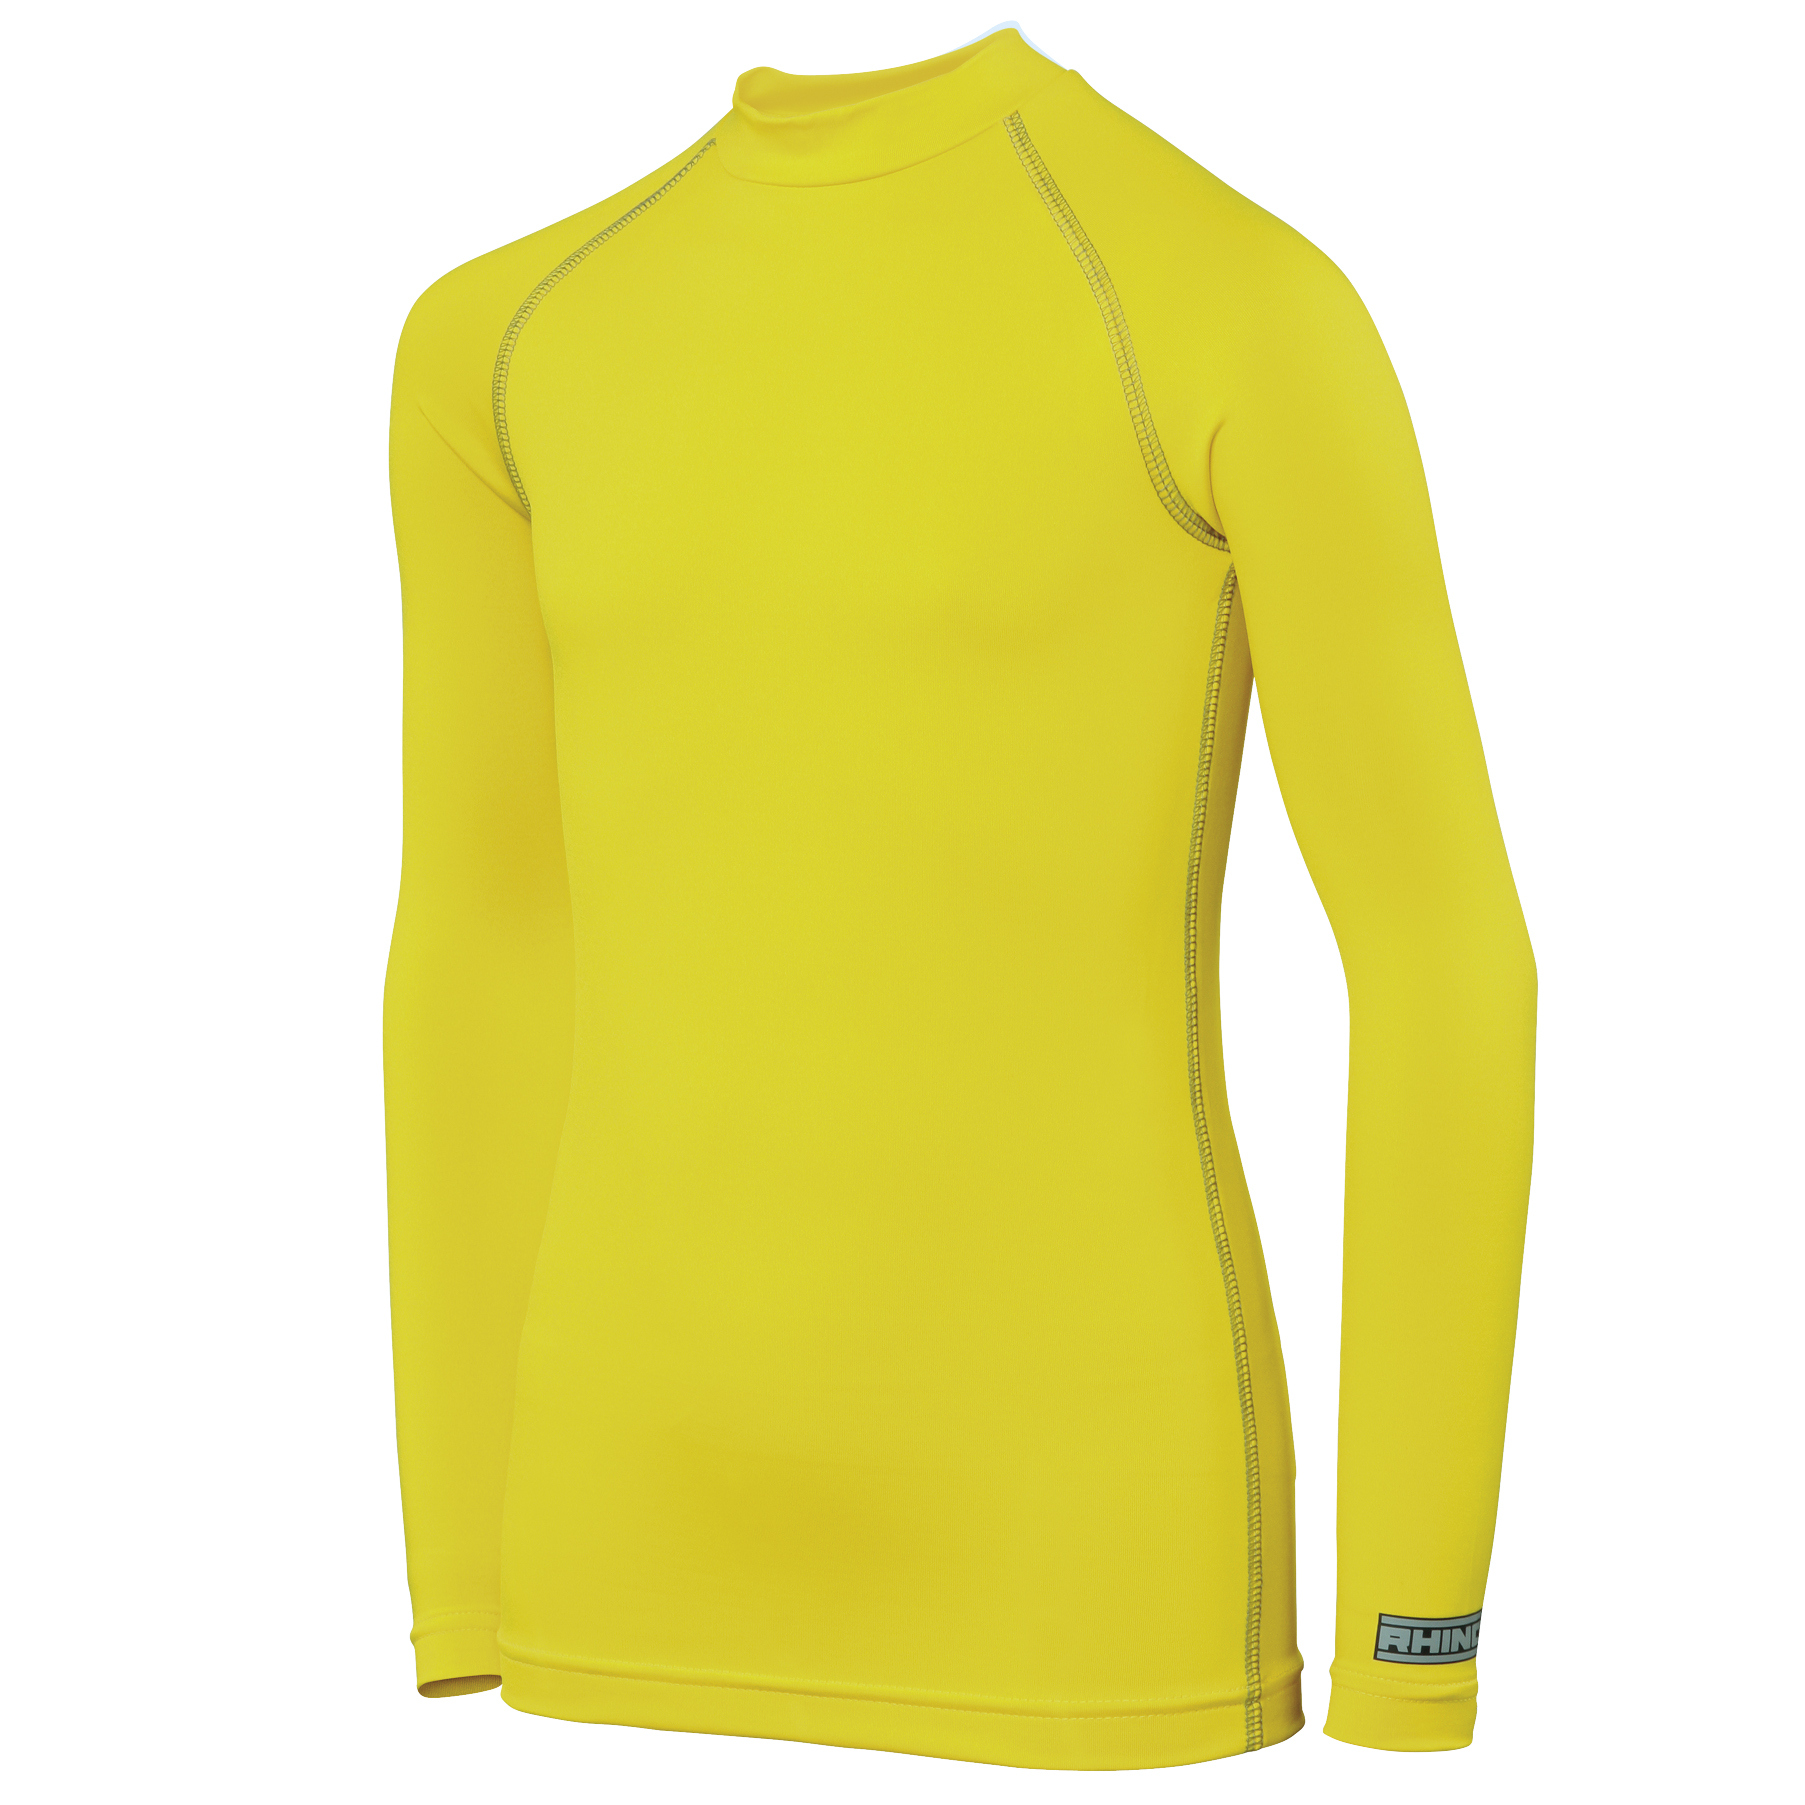 Rhino Childrens Boys Long Sleeve Thermal Underwear Base Layer Vest Top (LY-XLY) (Fluorescent Yellow)